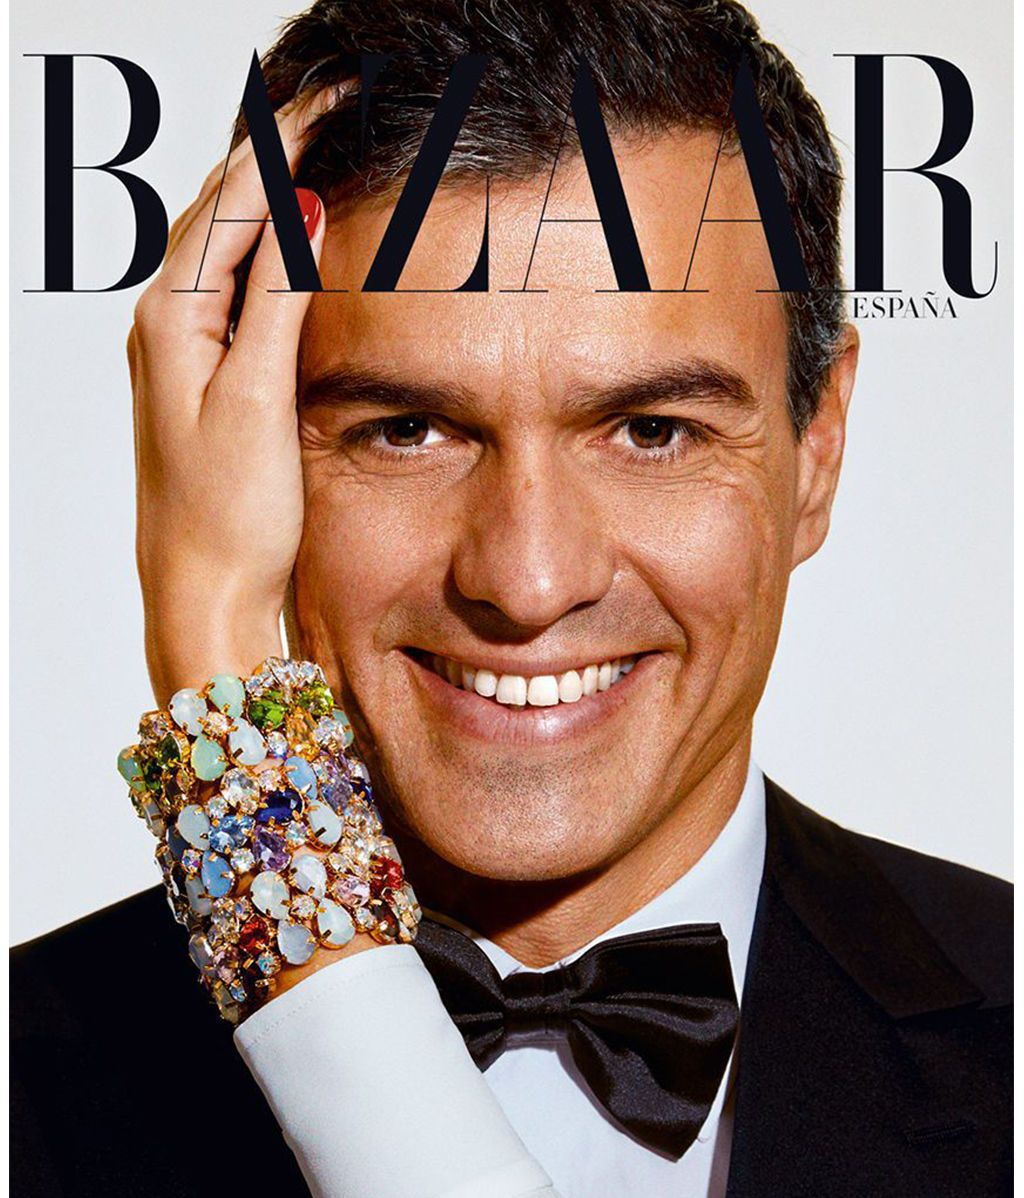 Image result for pedro sanchez vanity fair